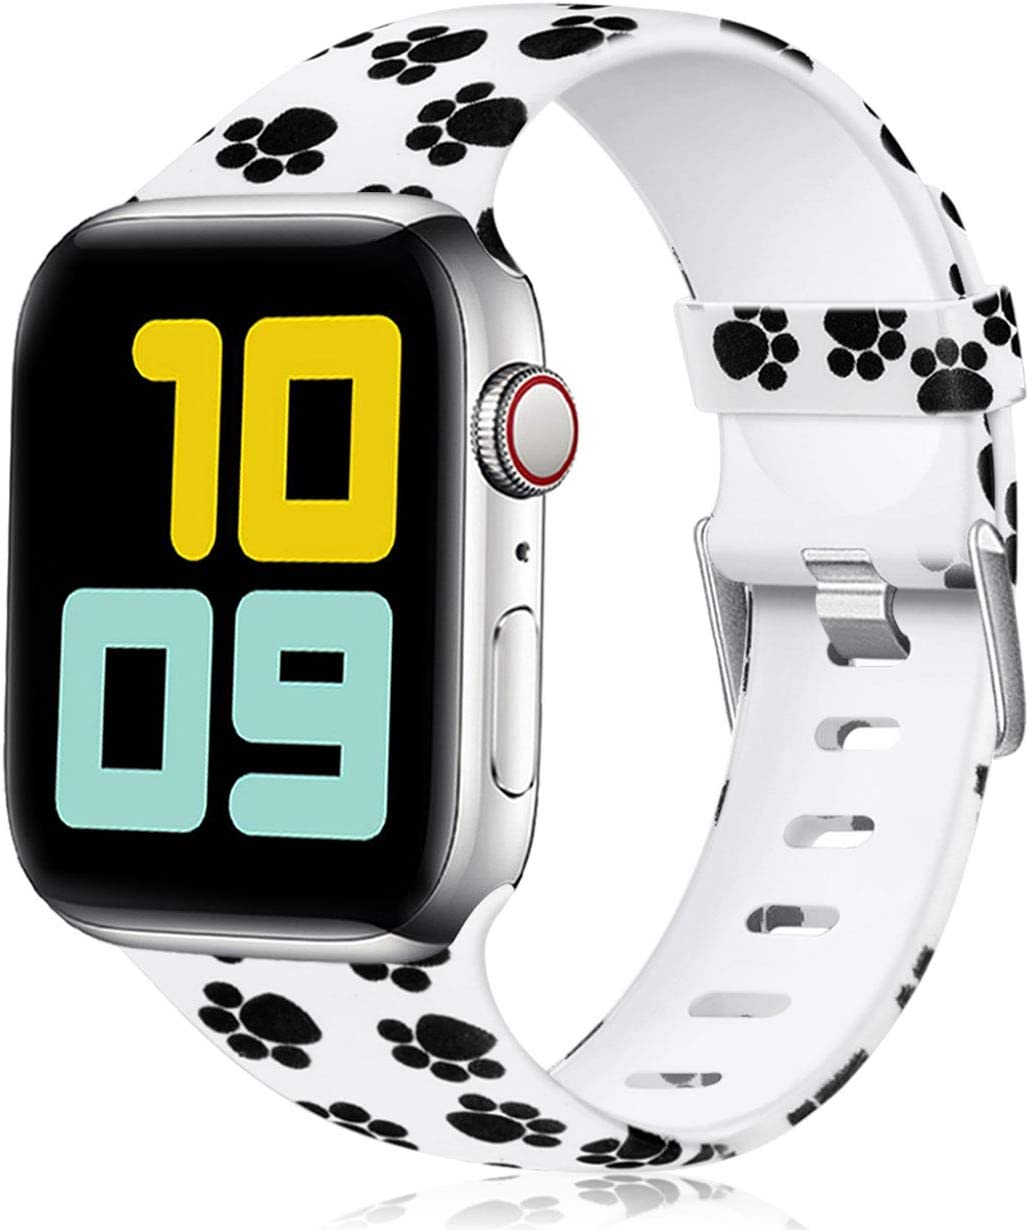 Nofeda Floral Bands Compatible with Apple Watch 40mm 38mm for Women Men, Soft Fadeless Pattern Printed Sport Band Replacement for iWatch Series 5,4,3,2,1, S/M, Paw